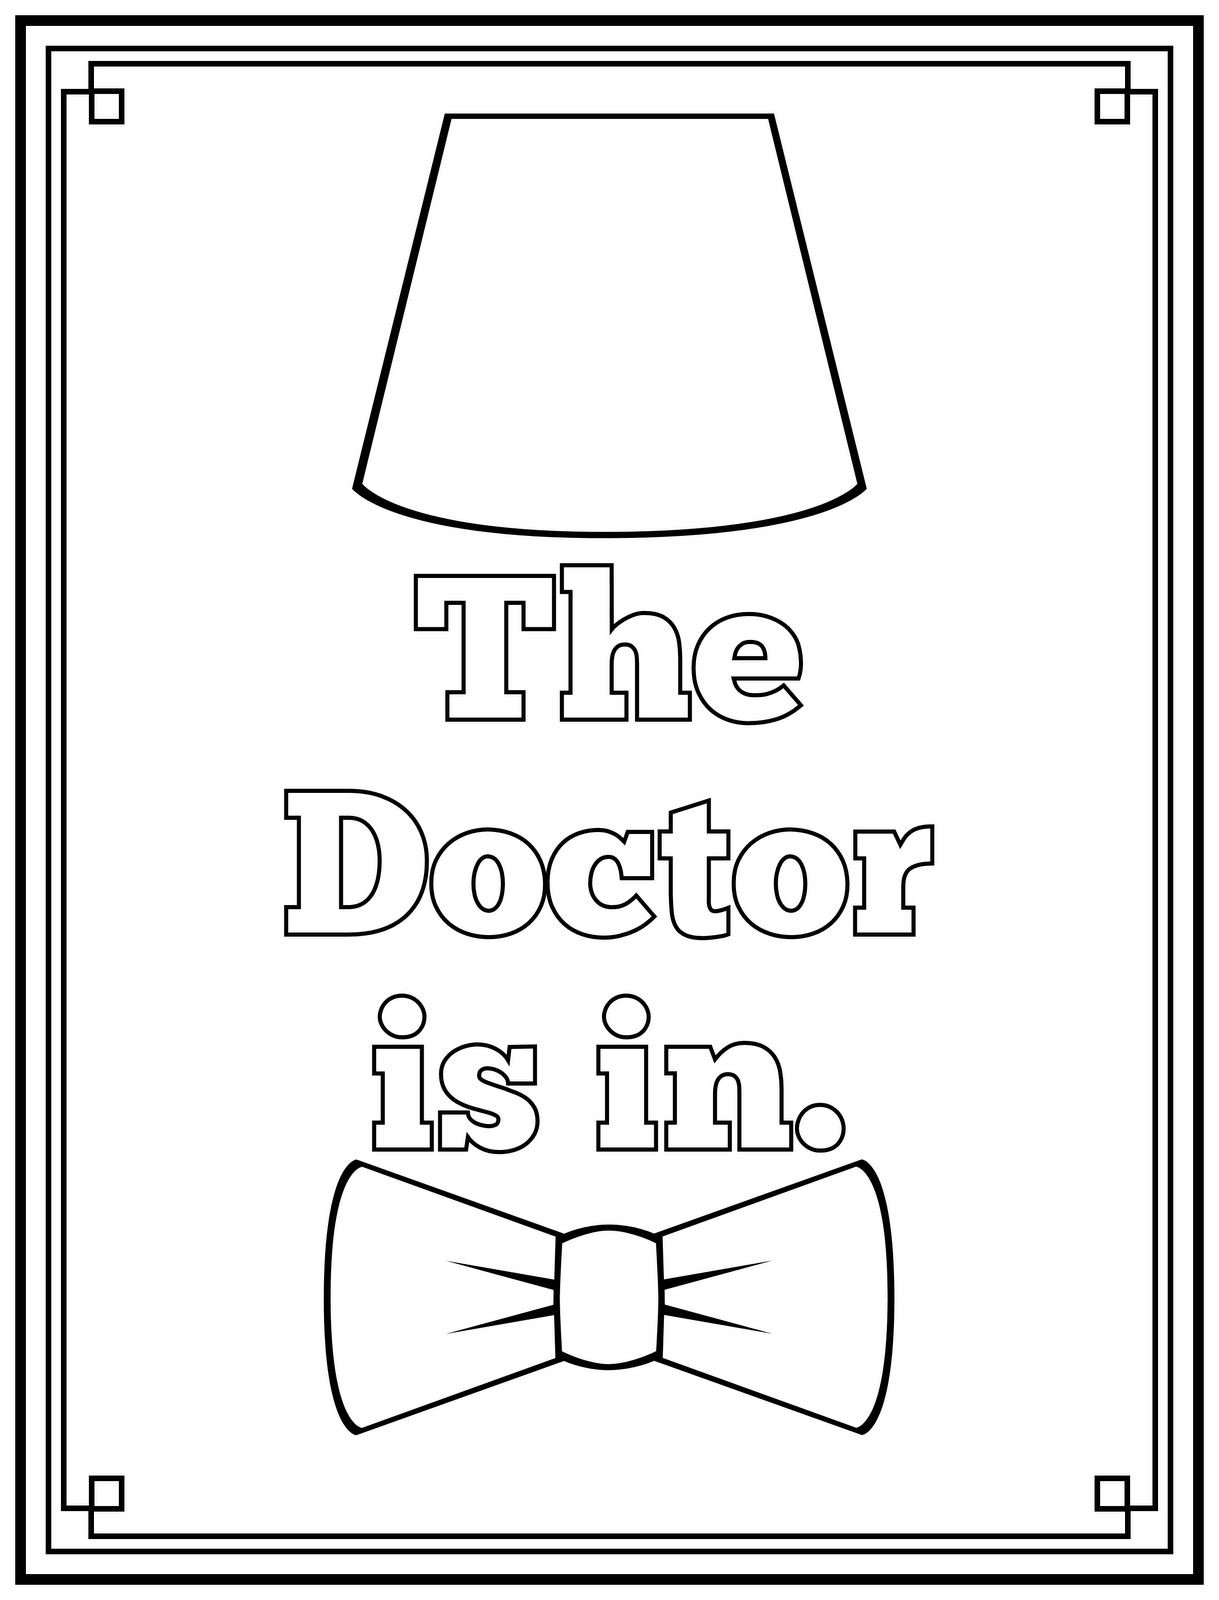 The Doctor Is In Printable Art And Coloring Page | Dodo's Birthday - Doctor Coloring Pages Free Printable